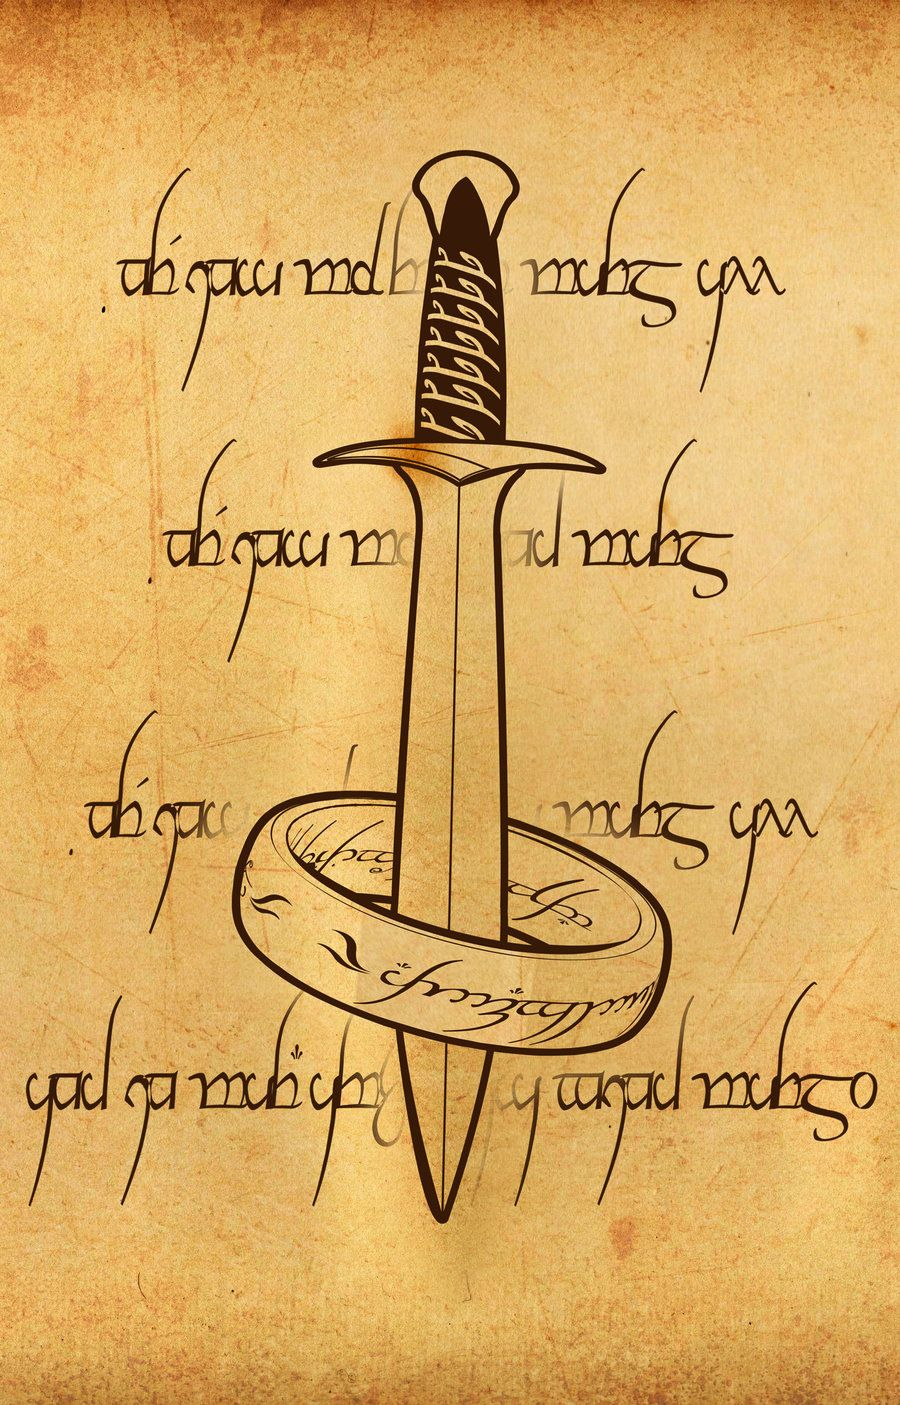 LOTR iphone wallpaper by PilgrimwandersdeviantART I